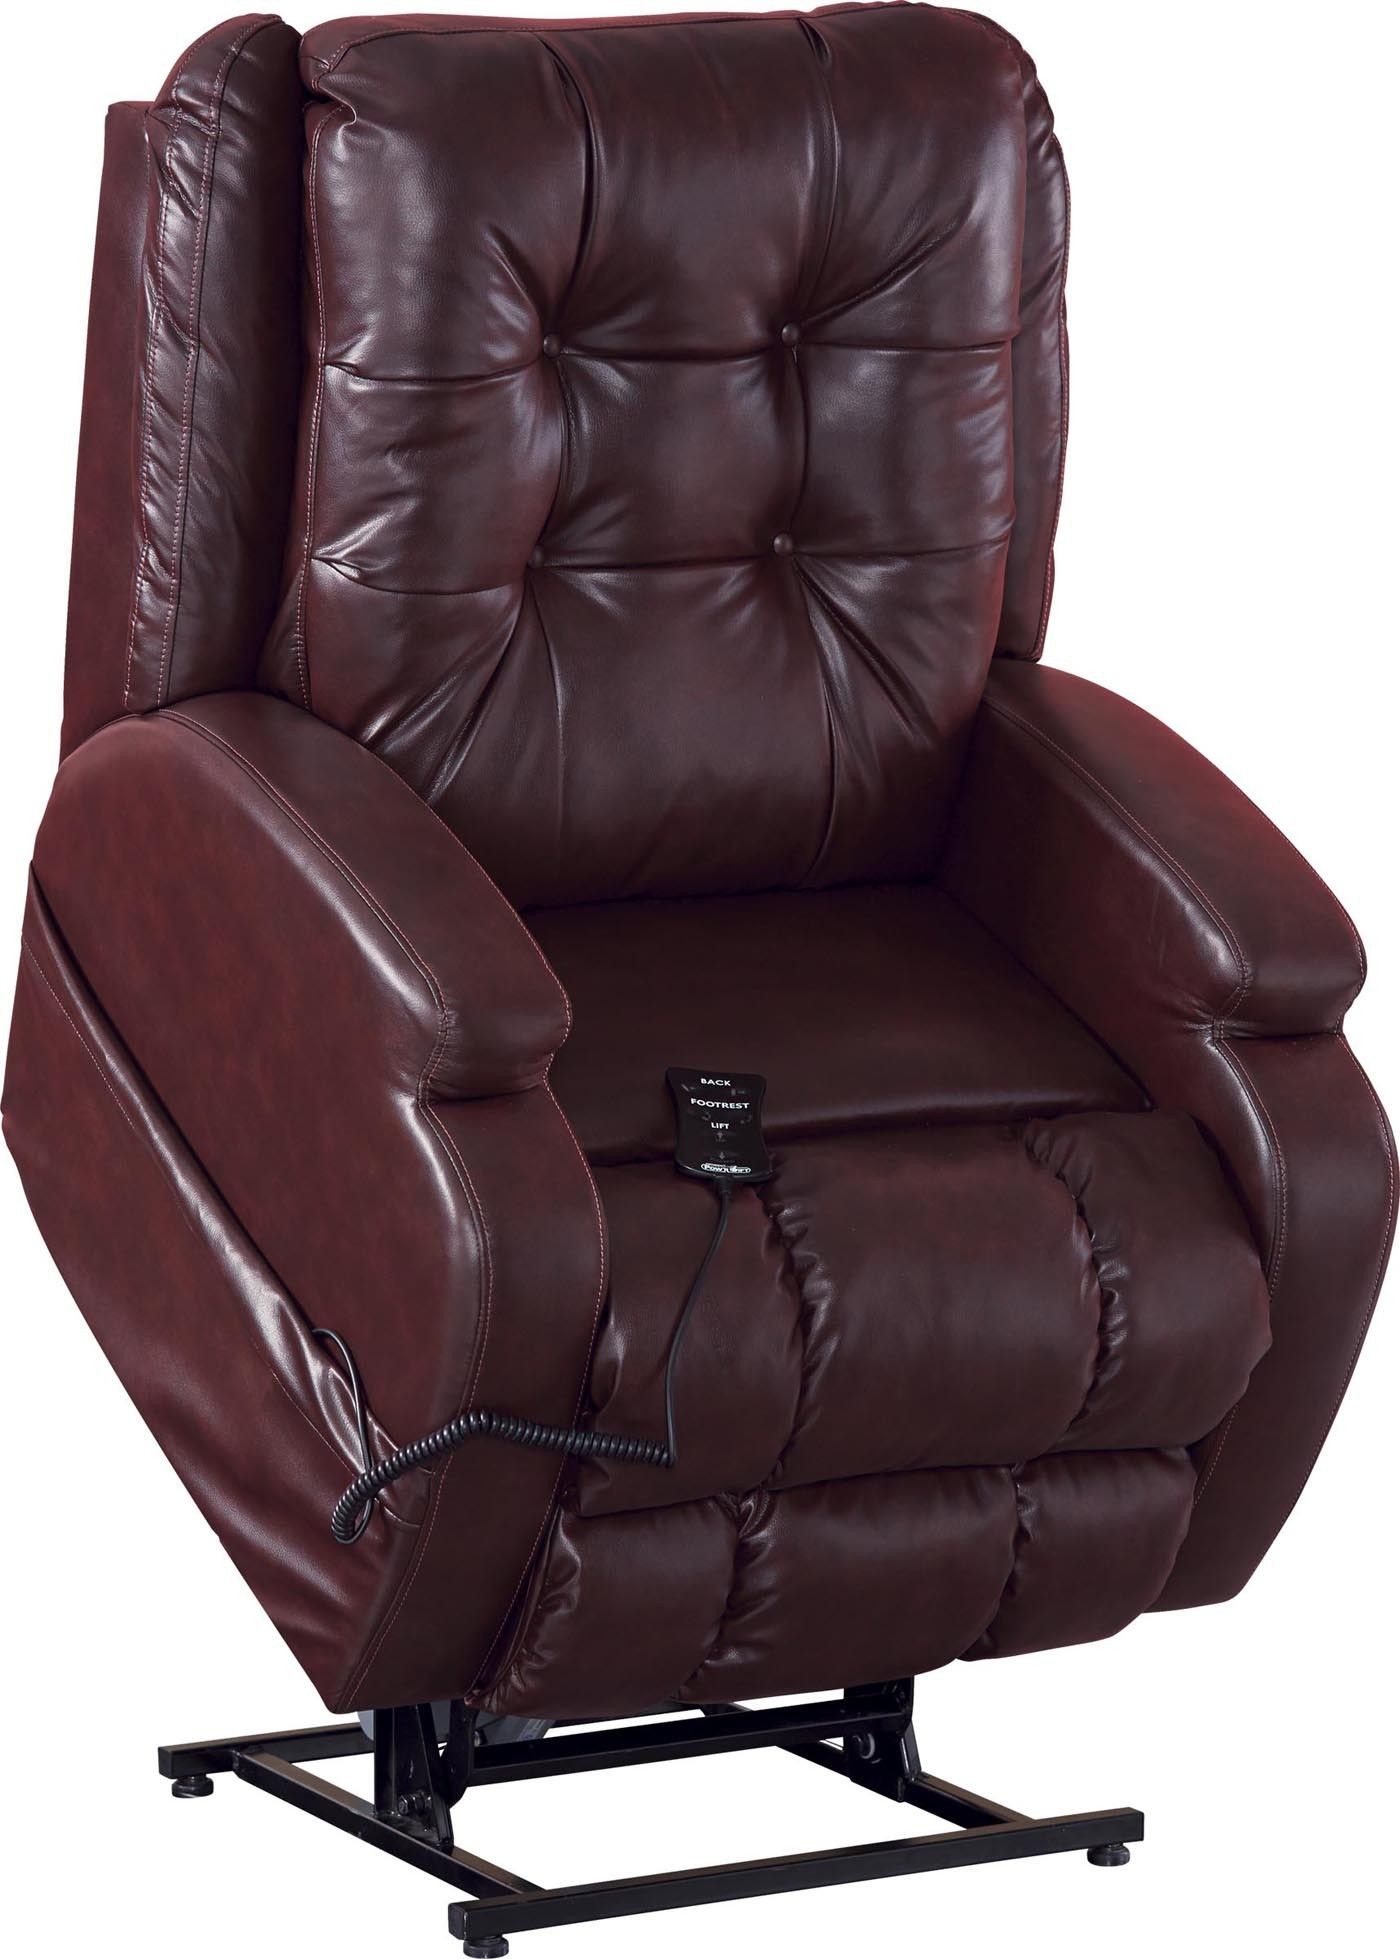 living fabric flexsteel product chair recliner home chairs nilson lift abe krasne room